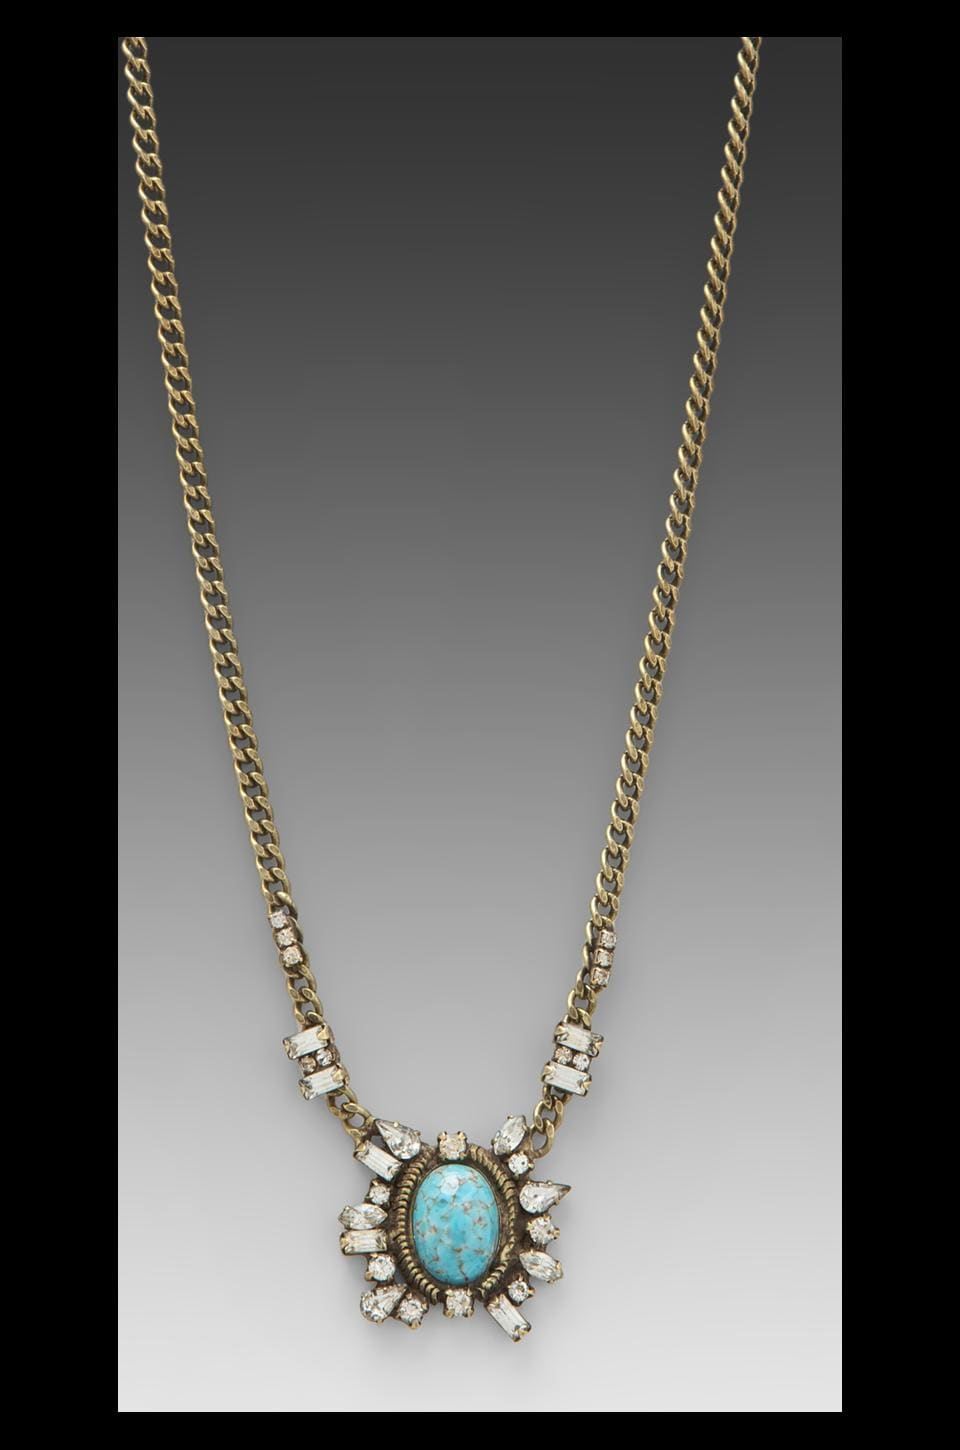 DANNIJO Dalton Necklace in Ox Brass/Turquoise